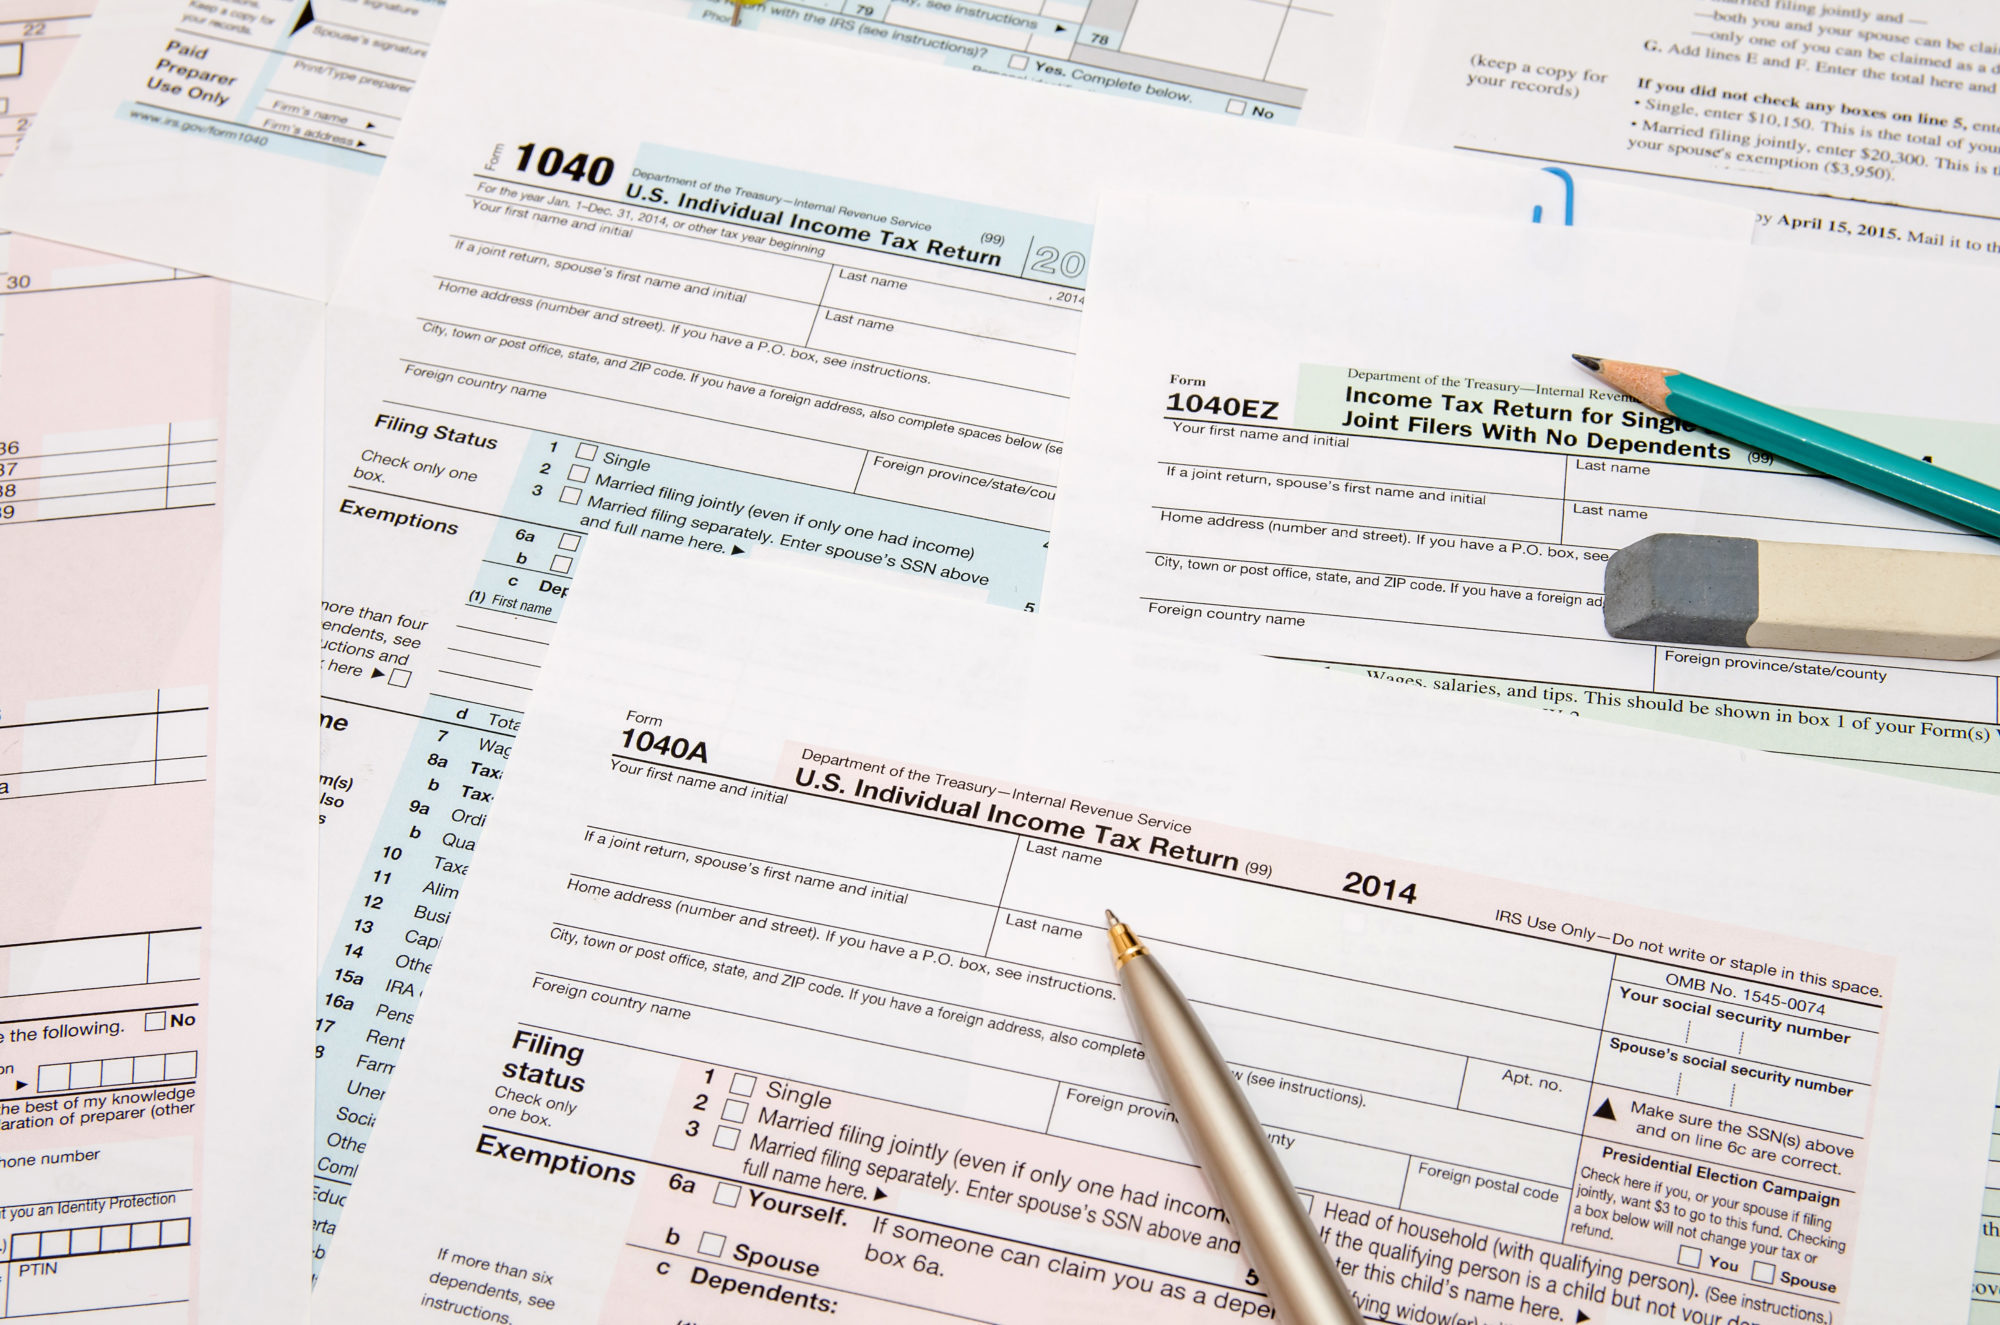 Watch Out for Tax-Related Scams